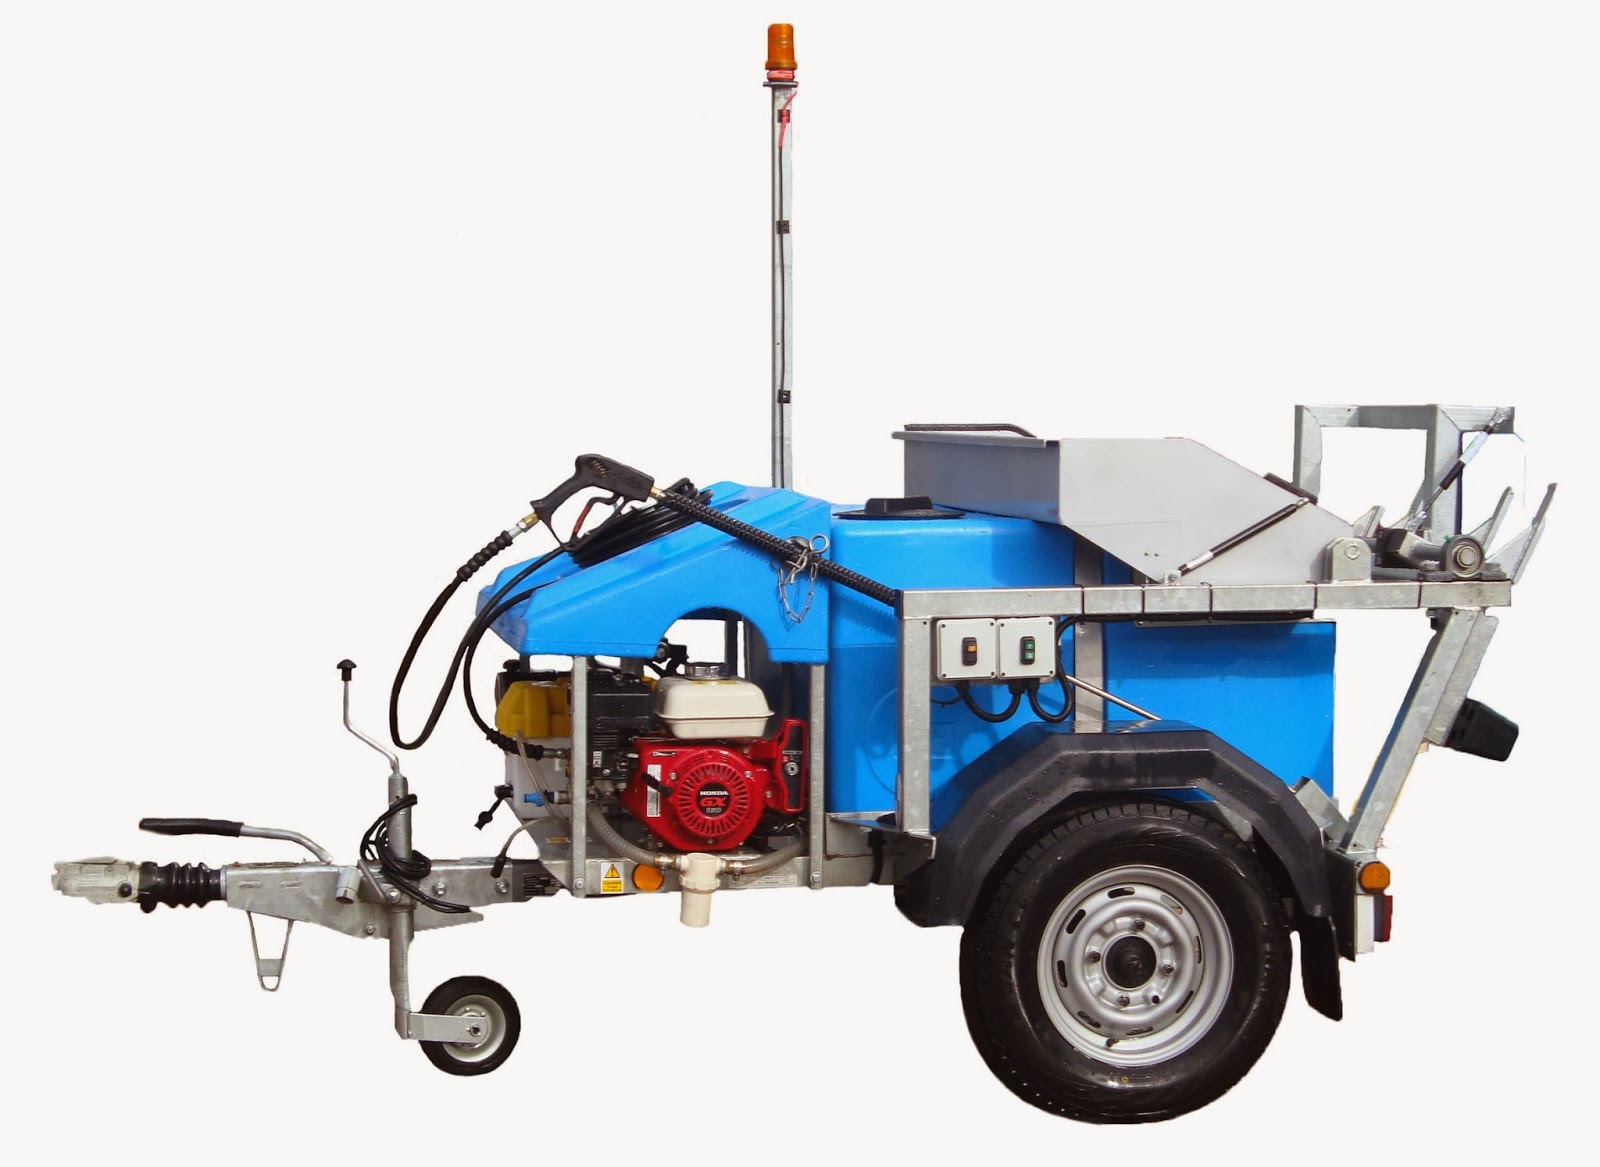 morclean new 2014 wheelie bin wash washer machine cleaning issa interclean